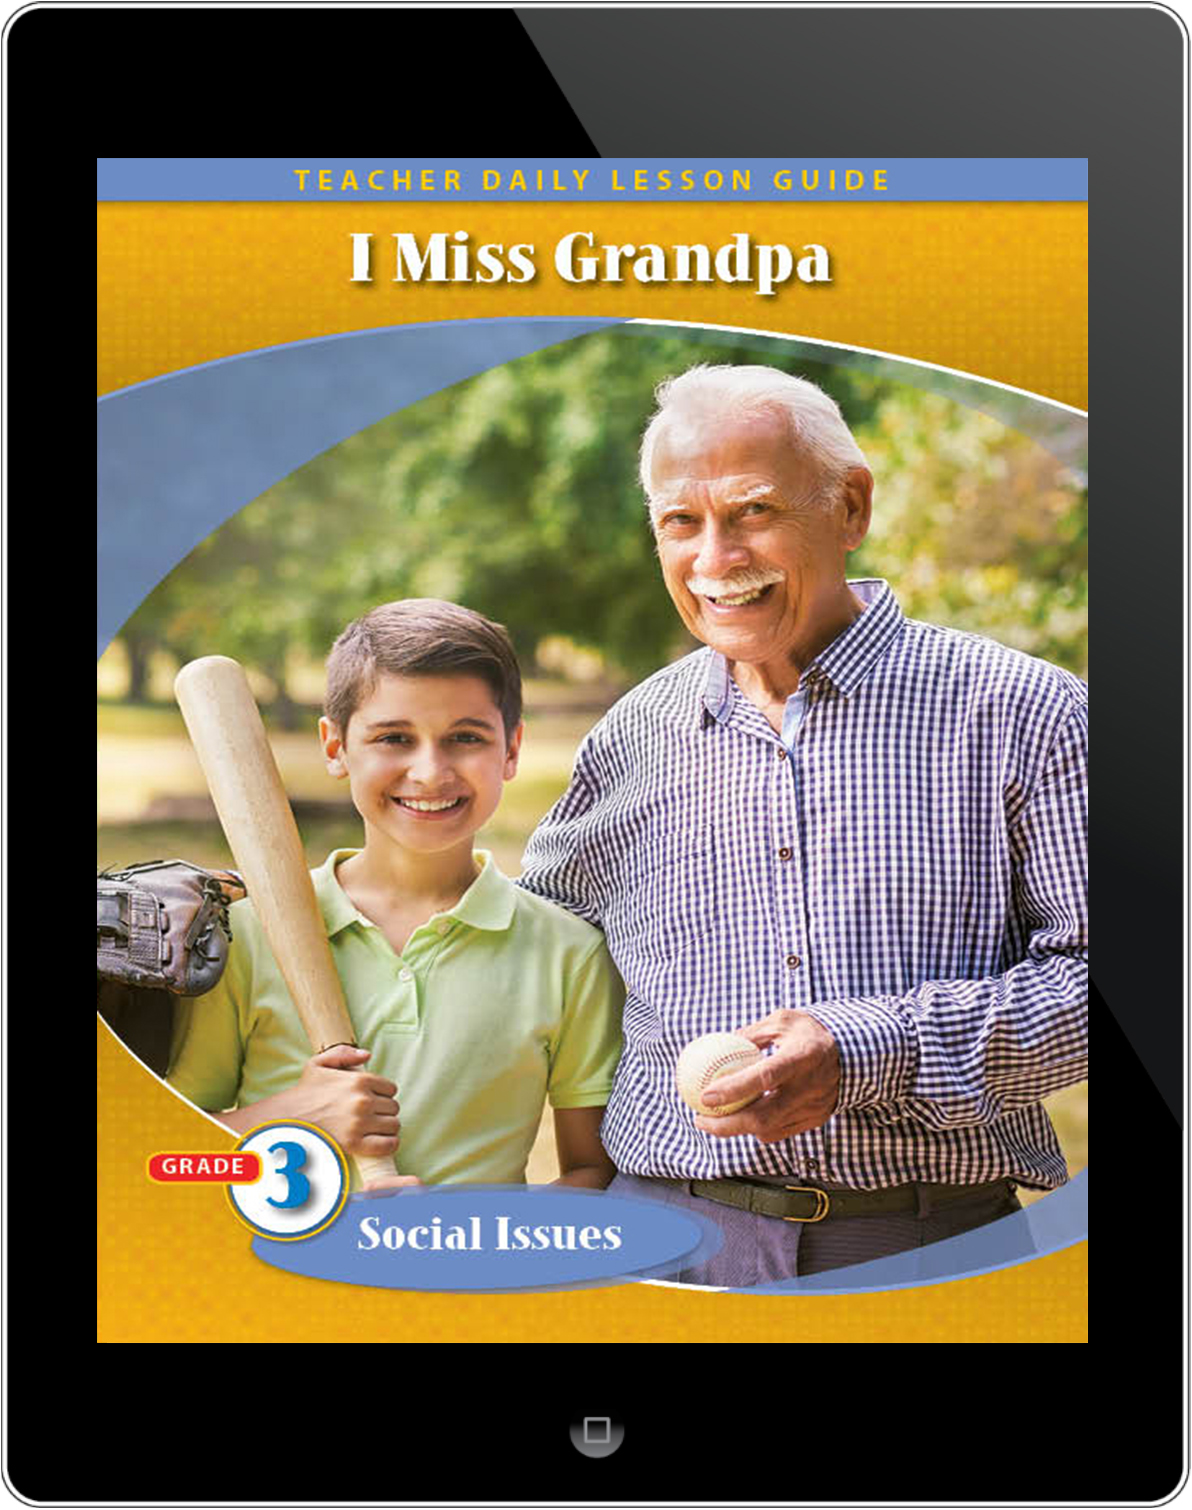 Pathways2.0 Grade 3 Social Issues Unit: I Miss Grandpa: A Story to Help Young Children Daily Lesson Guide 5 Year License